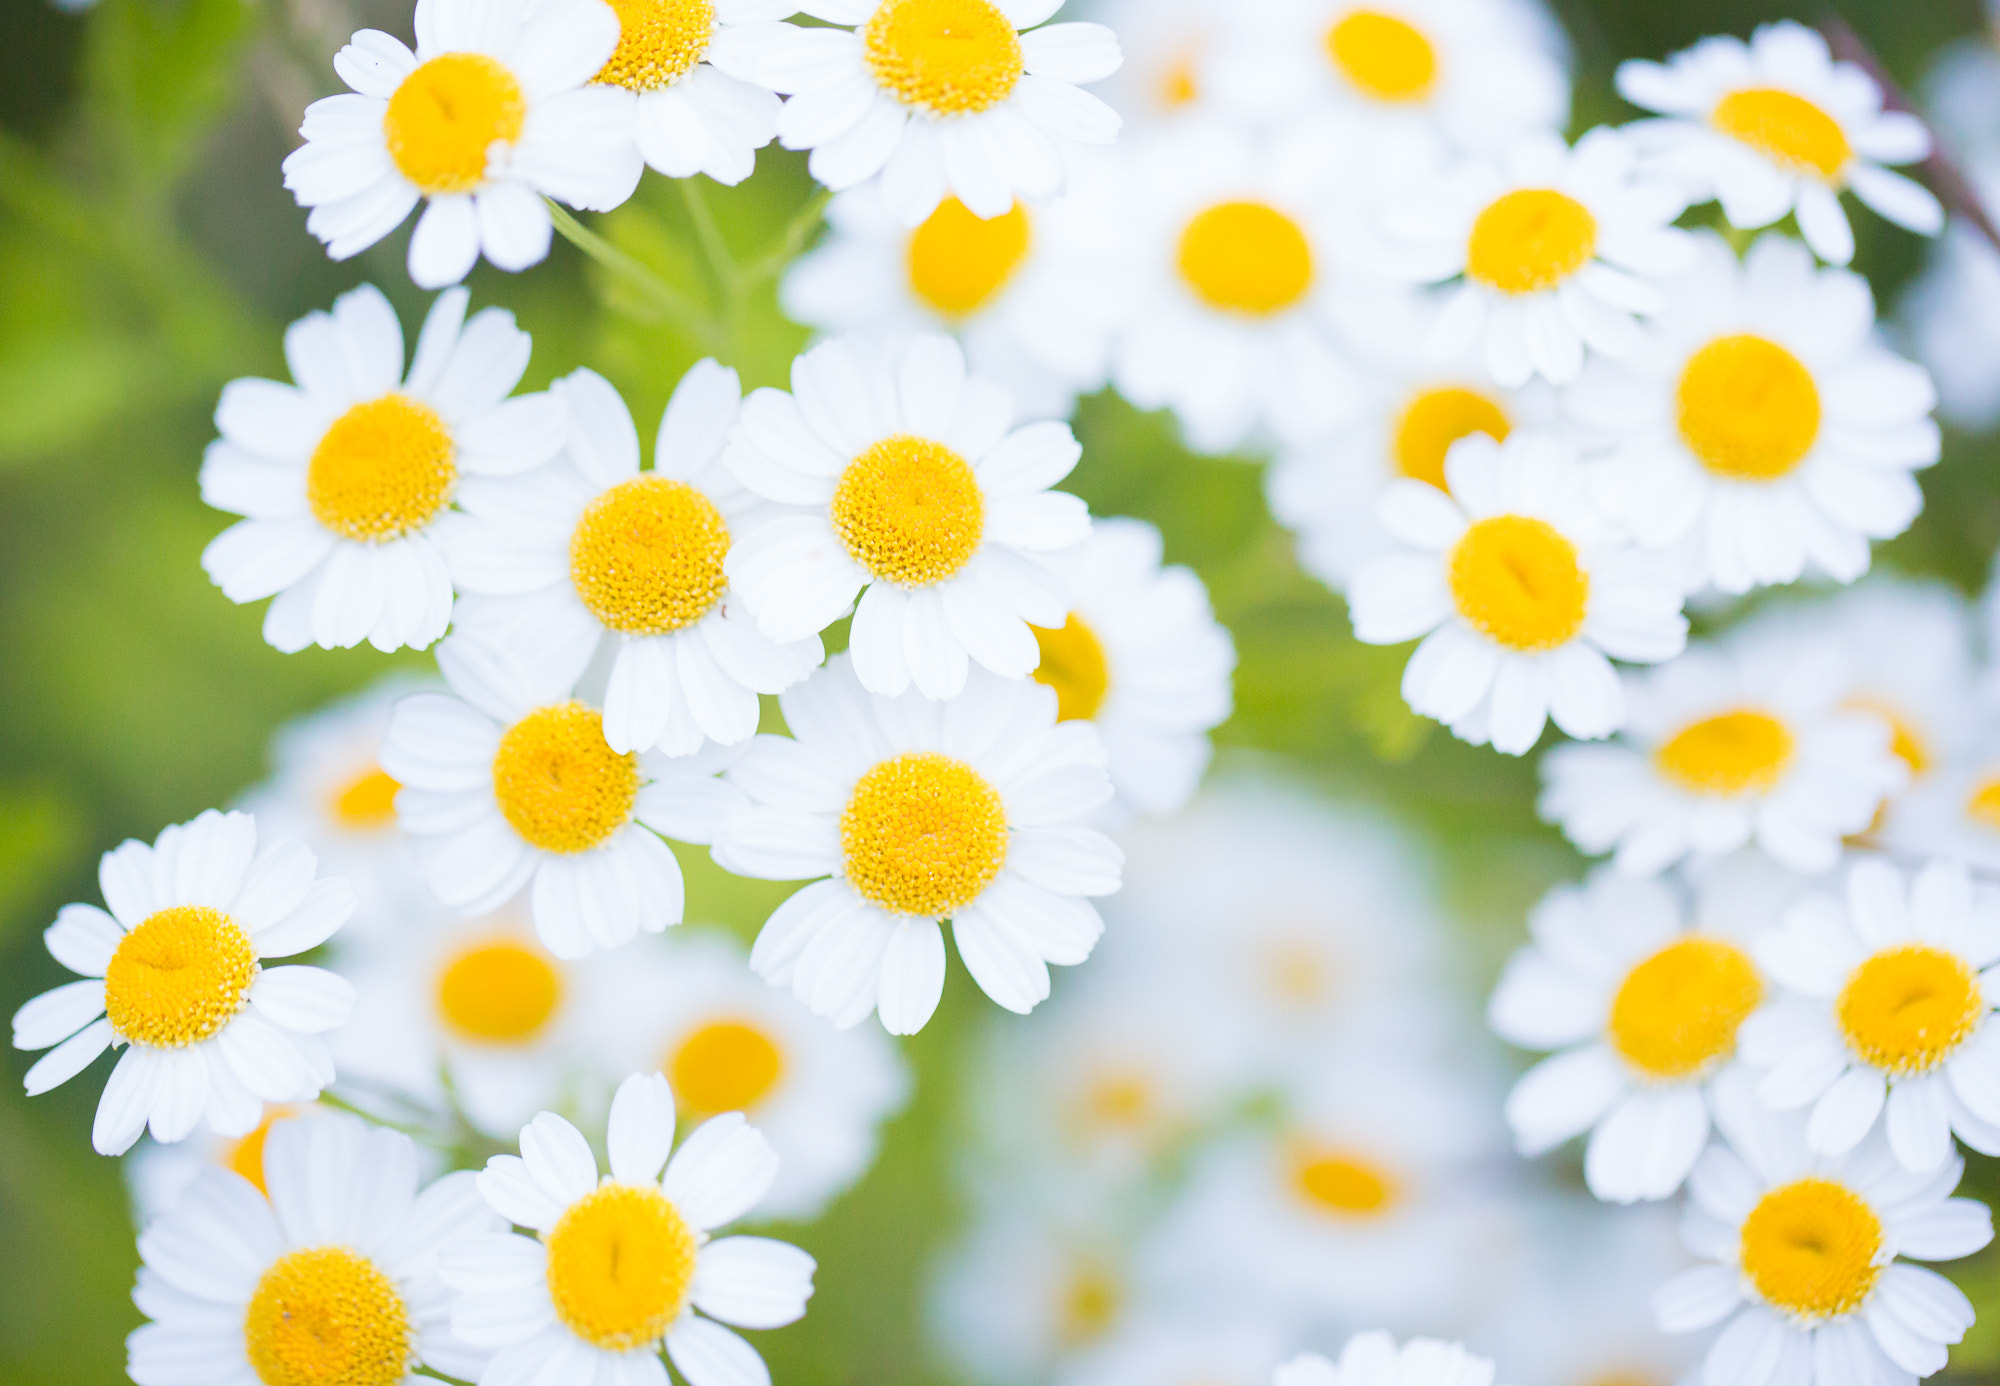 Photograph Daisies by Joseph Calev on 500px